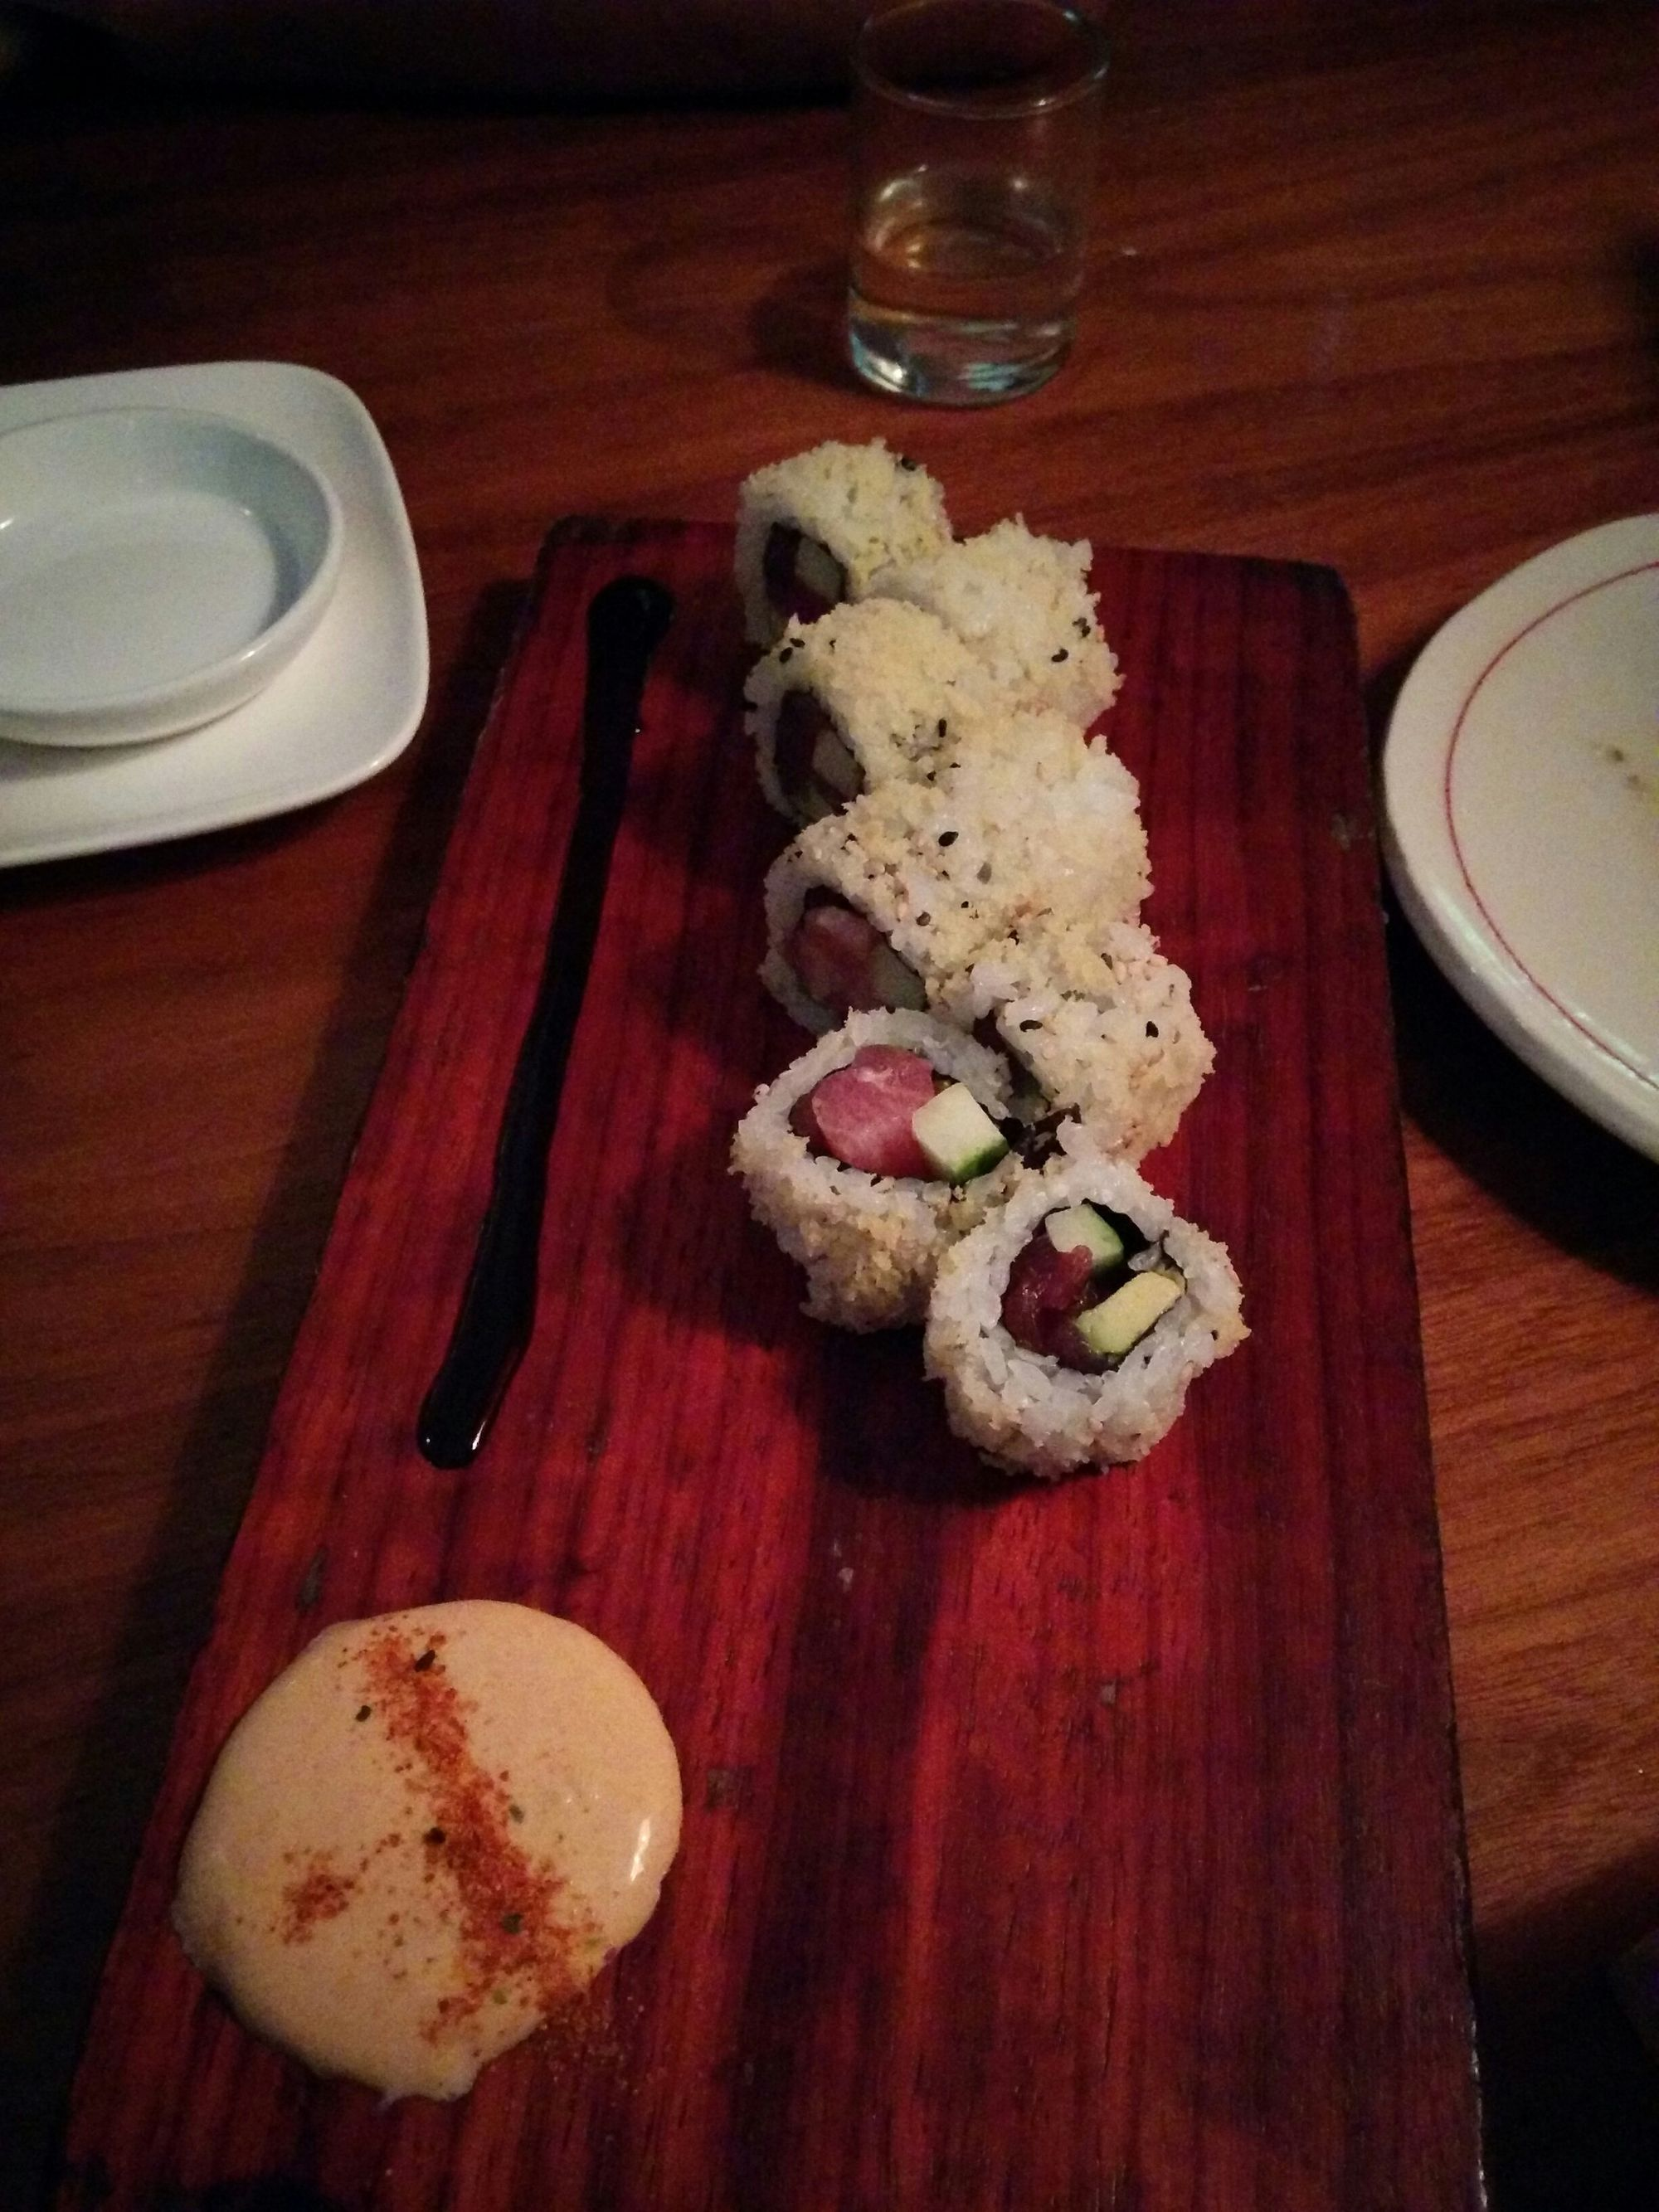 Restaurant Review: Does Uchi live up to the hype?